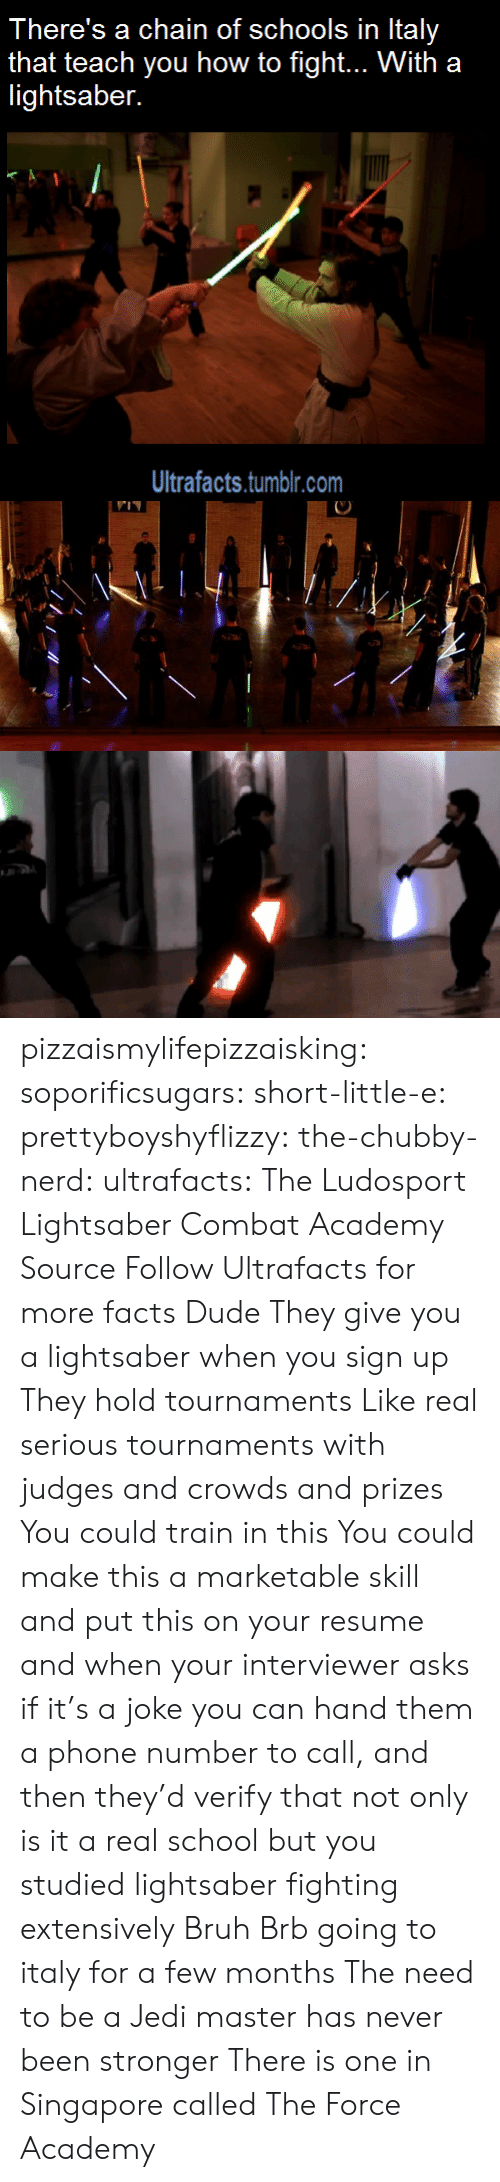 Bruh, Dude, and Facts: There's a chain of schools in Italy  that teach you how to fight... With a  lightsaber.  Ultrafacts.tumblr.com pizzaismylifepizzaisking:  soporificsugars:  short-little-e:  prettyboyshyflizzy:  the-chubby-nerd:  ultrafacts:  The Ludosport Lightsaber Combat Academy Source Follow Ultrafacts for more facts  Dude They give you a lightsaber when you sign up They hold tournaments Like real serious tournaments with judges and crowds and prizes You could train in this You could make this a marketable skill and put this on your resume and when your interviewer asks if it's a joke you can hand them a phone number to call, and then they'd verify that not only is it a real school but you studied lightsaber fighting extensively  Bruh  Brb going to italy for a few months  The need to be a Jedi master has never been stronger  There is one in Singapore called The Force Academy